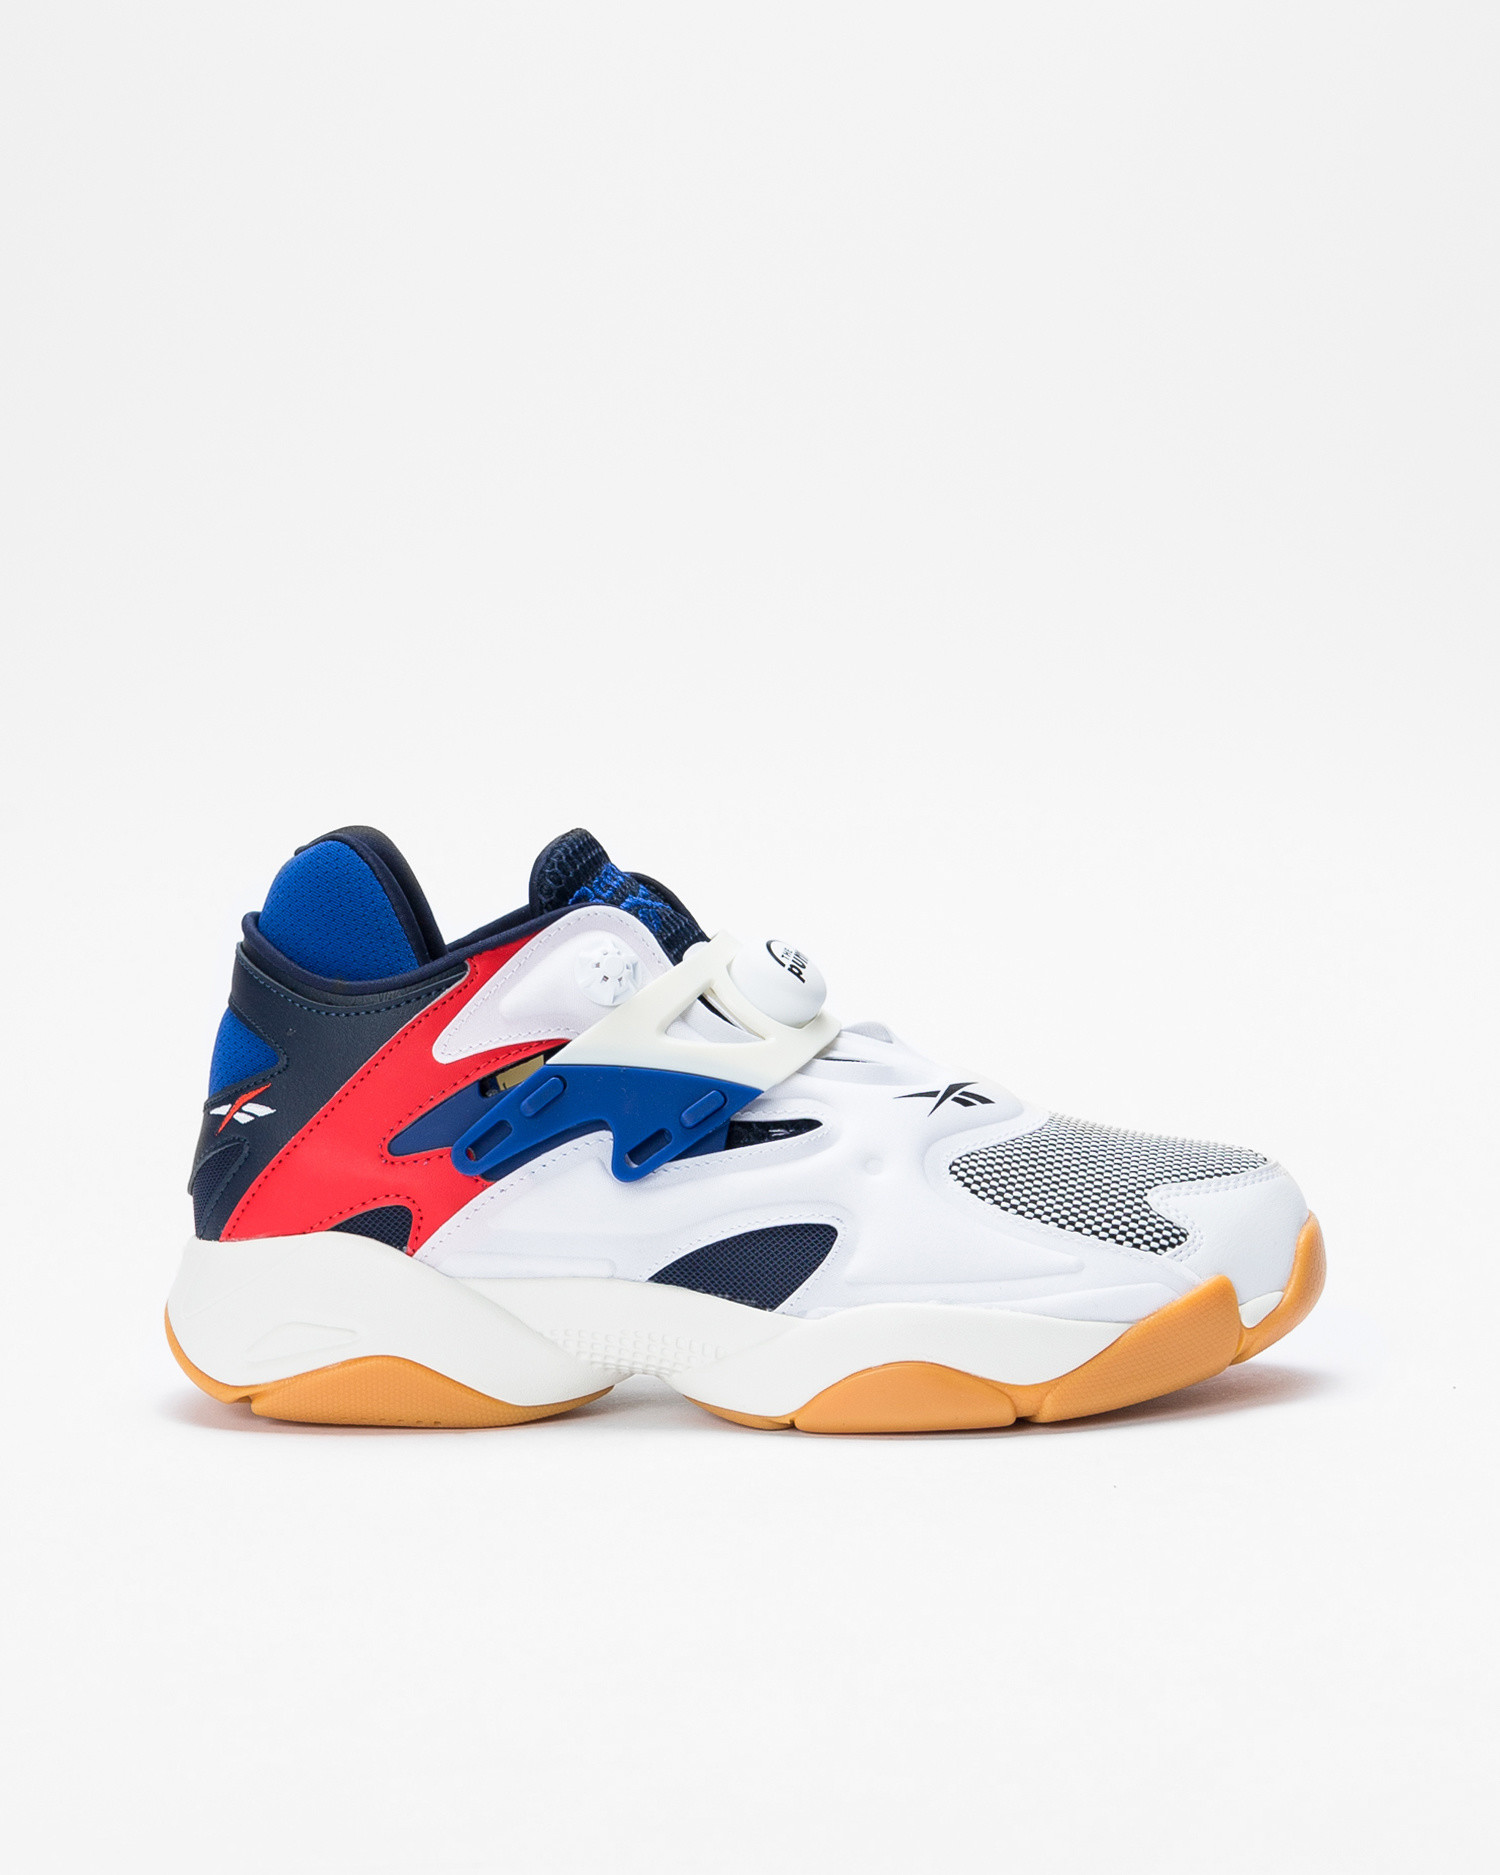 Reebok Pump Court White/Conavy/Chalk